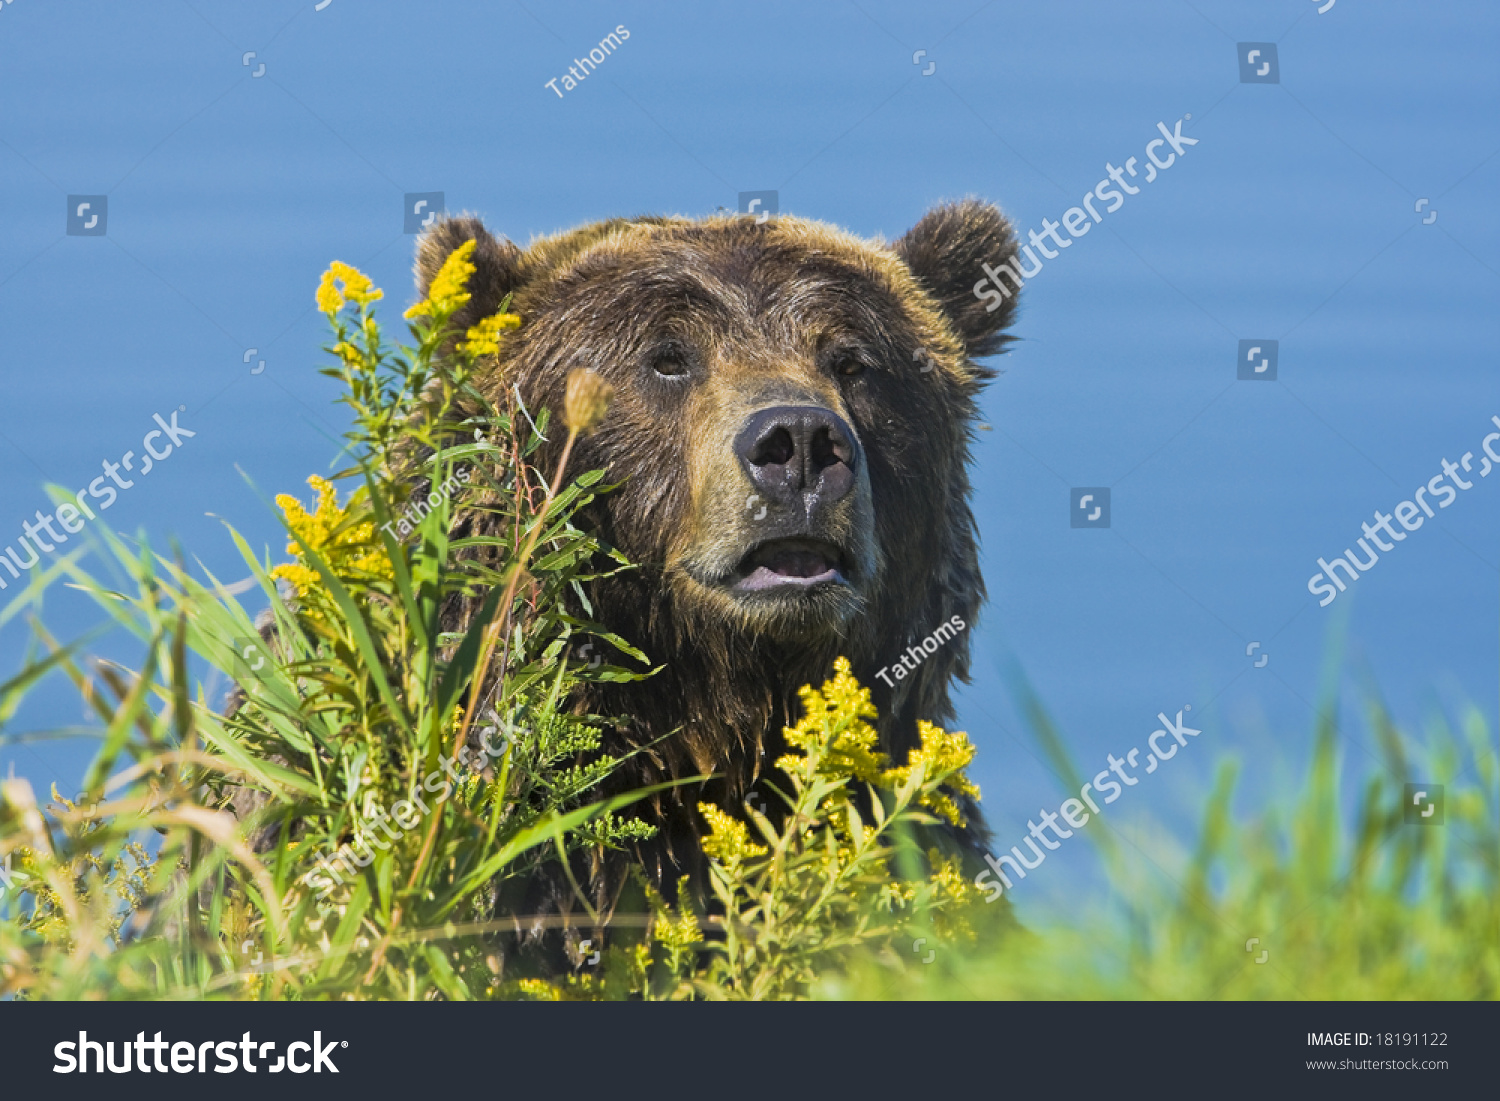 stock-photo-grizzly-bear-at-the-pond-181